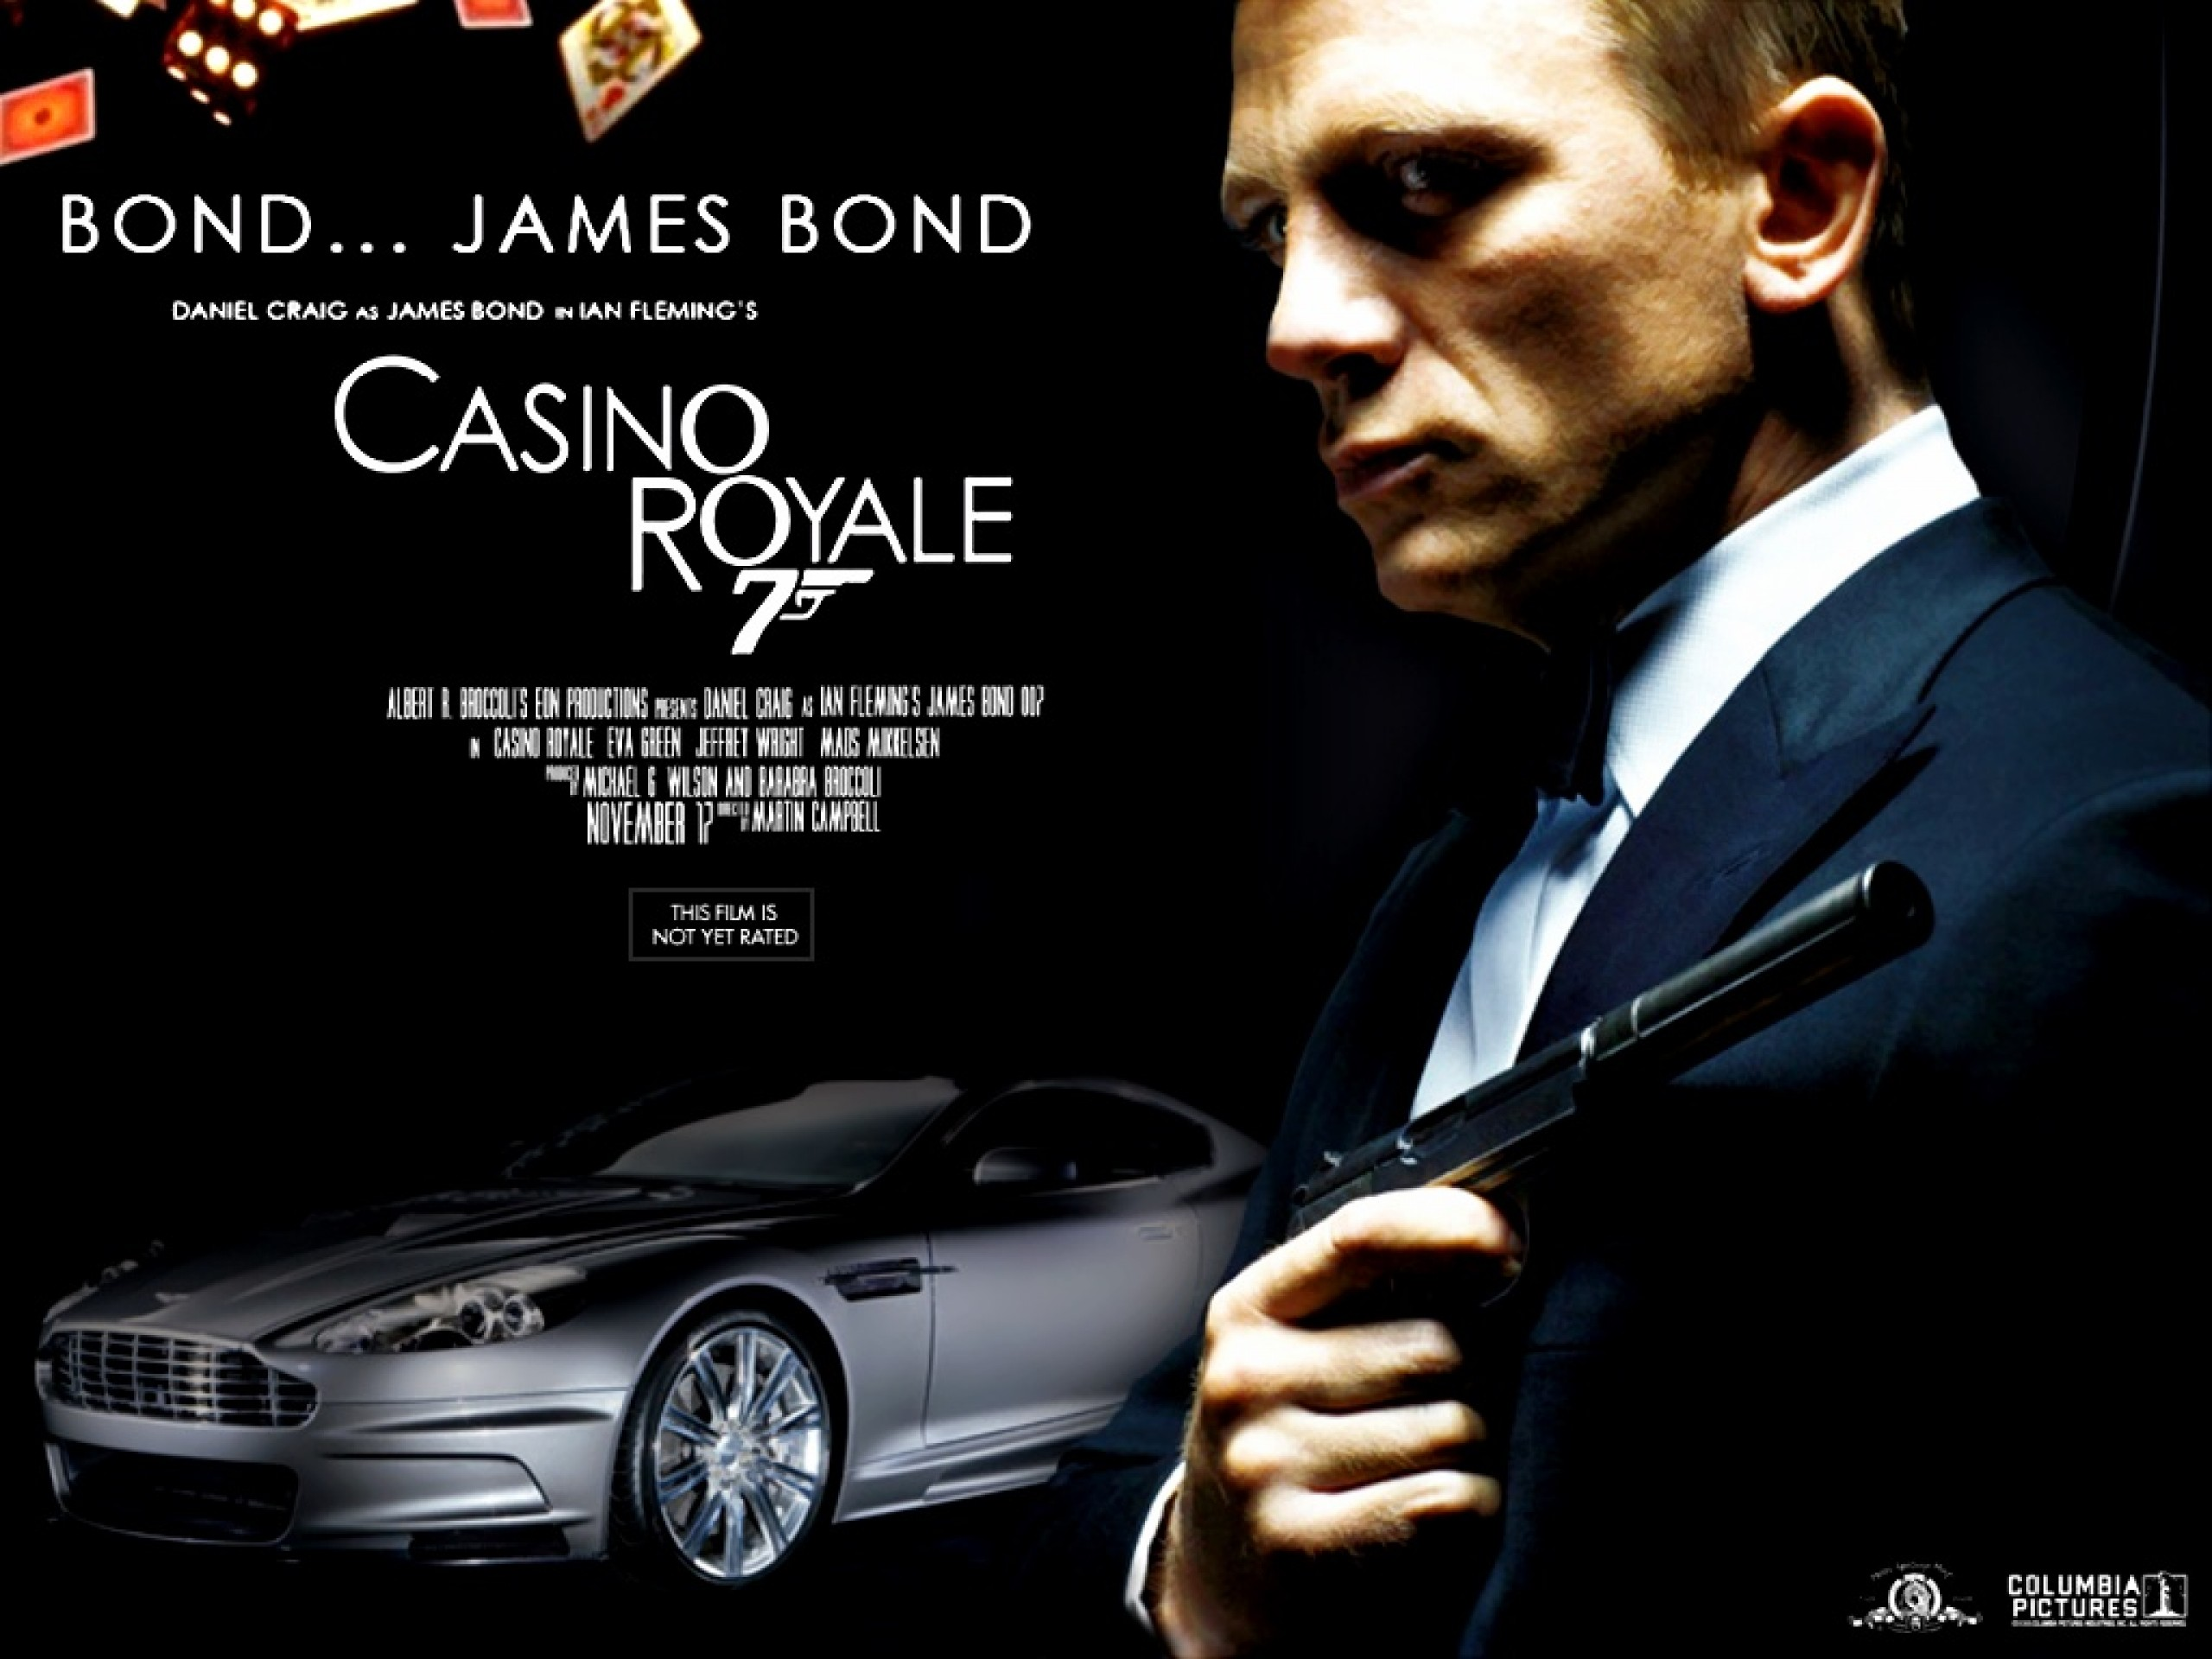 james bond casino royale full movie online wolf online spiele